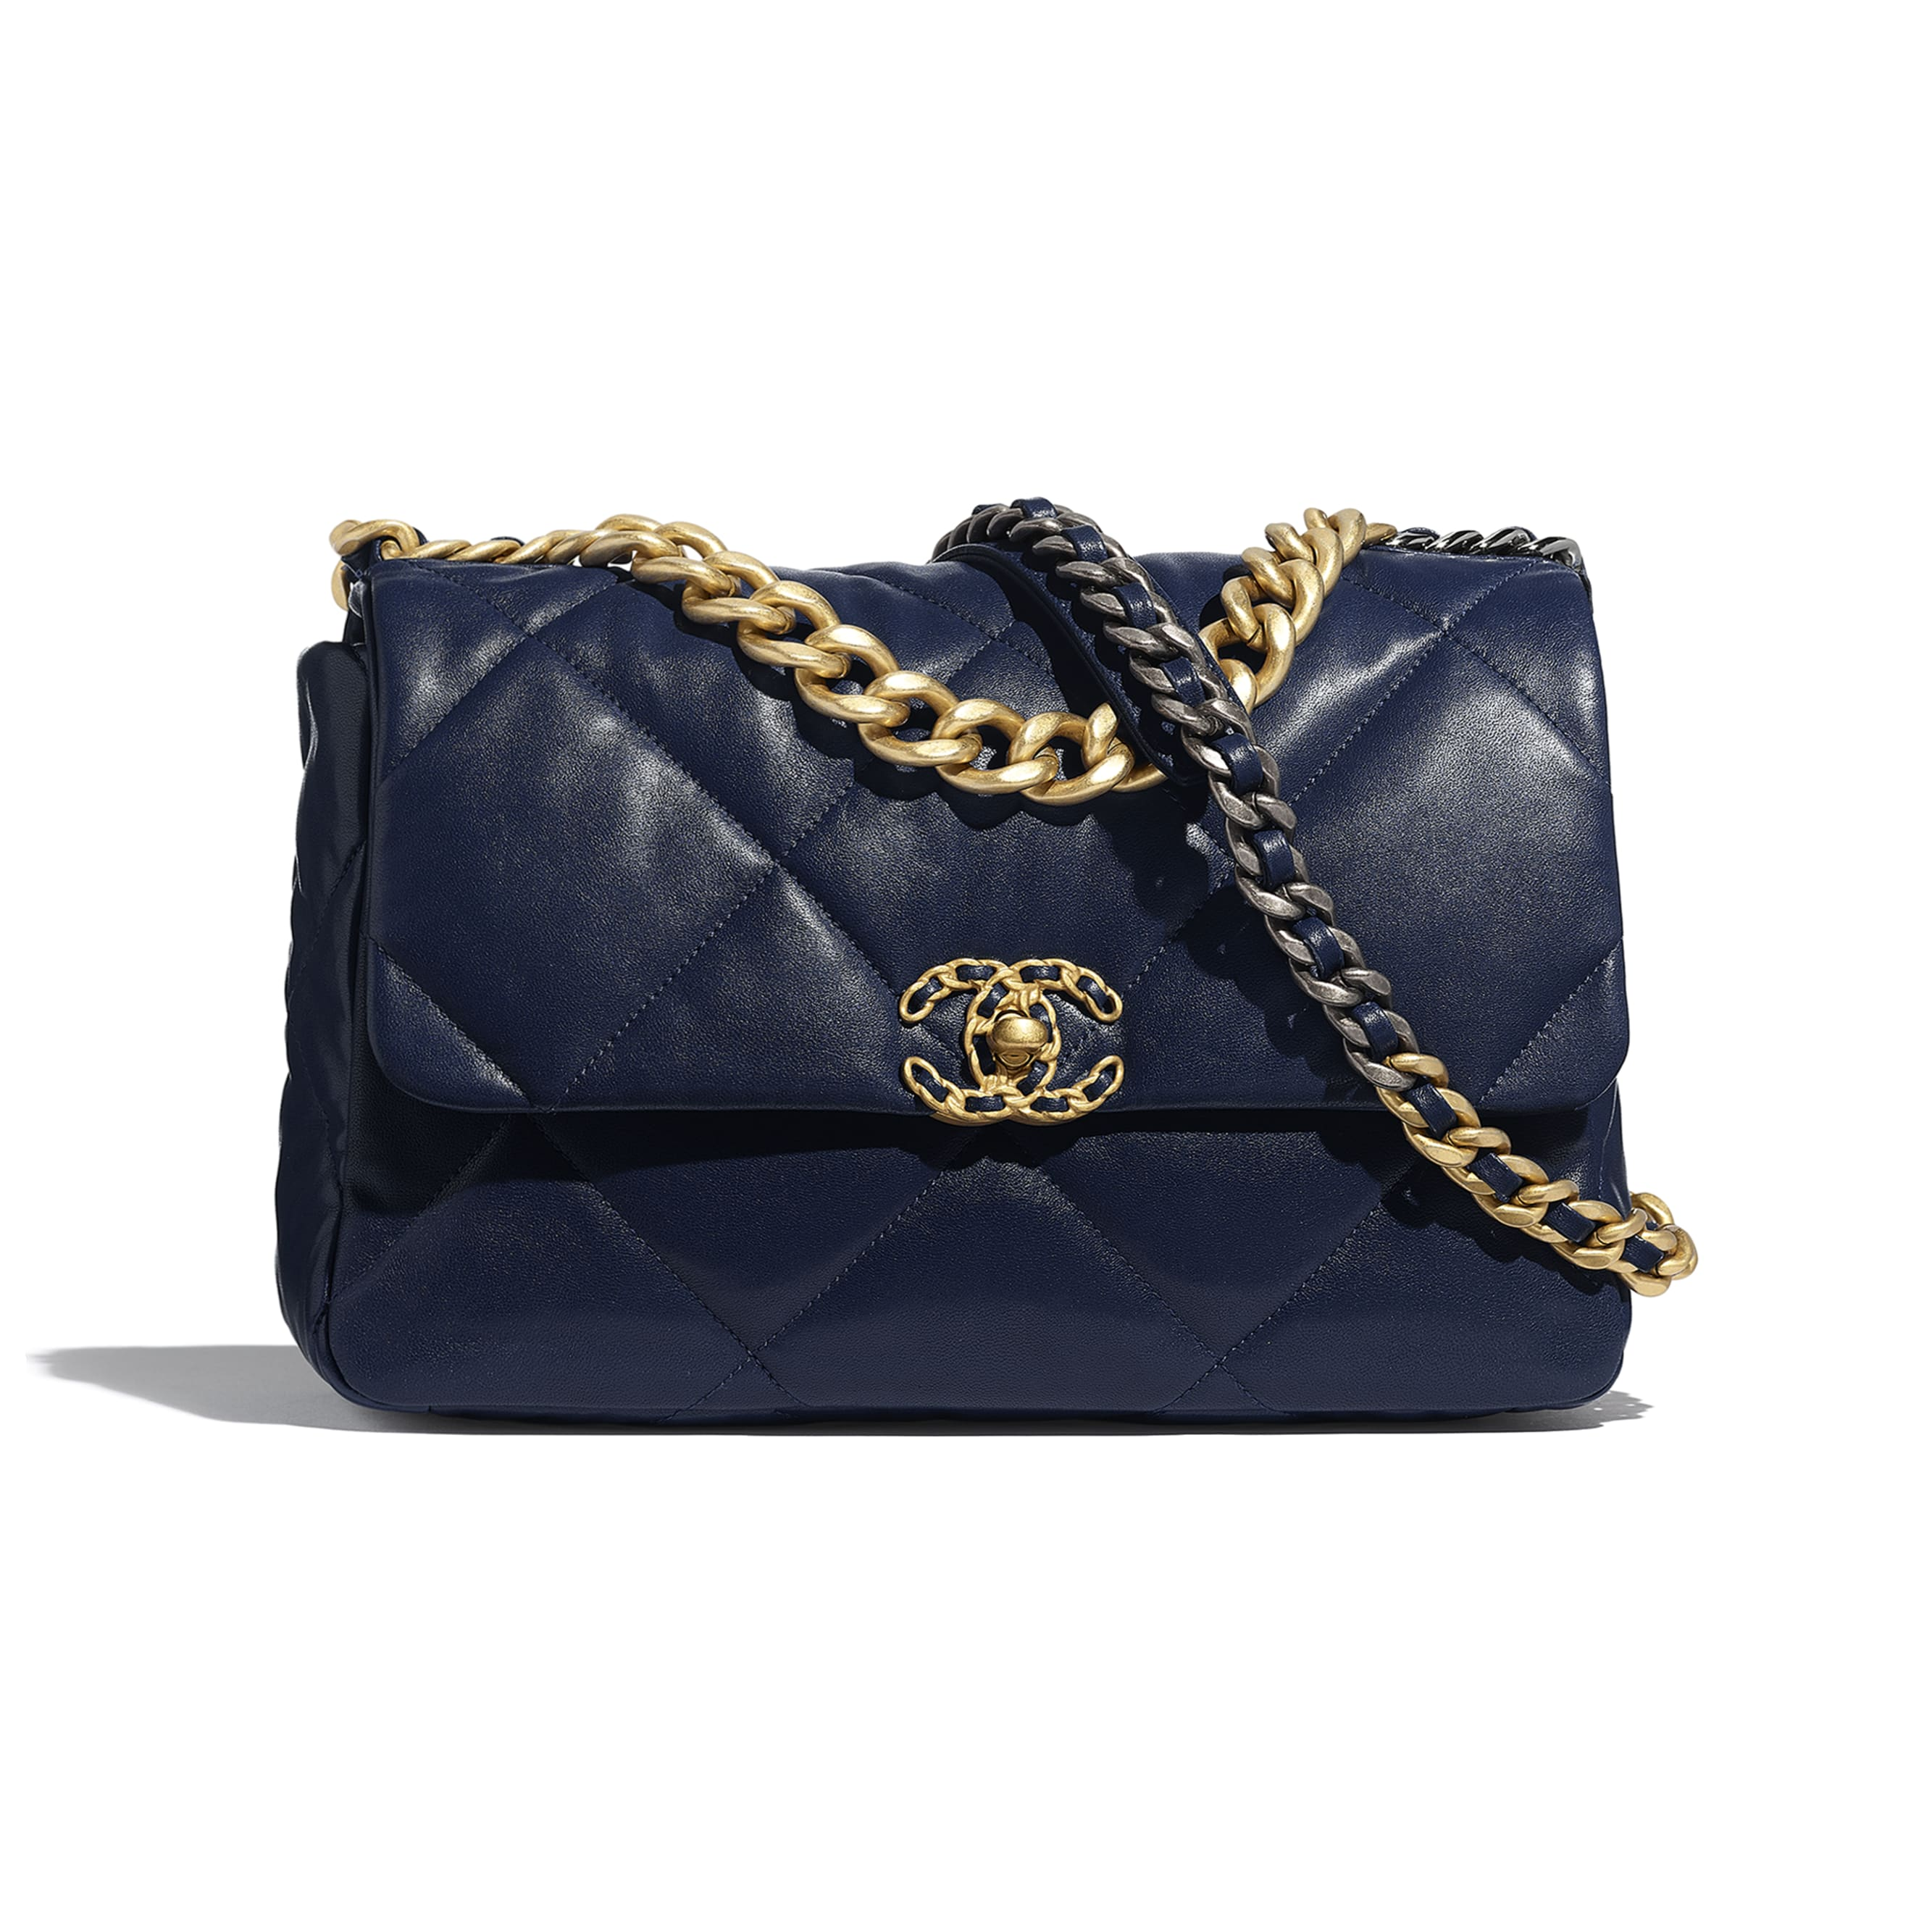 CHANEL 19 Large Flap Bag - Navy Blue - Lambskin, Gold-Tone, Silver-Tone & Ruthenium-Finish Metal - Default view - see standard sized version